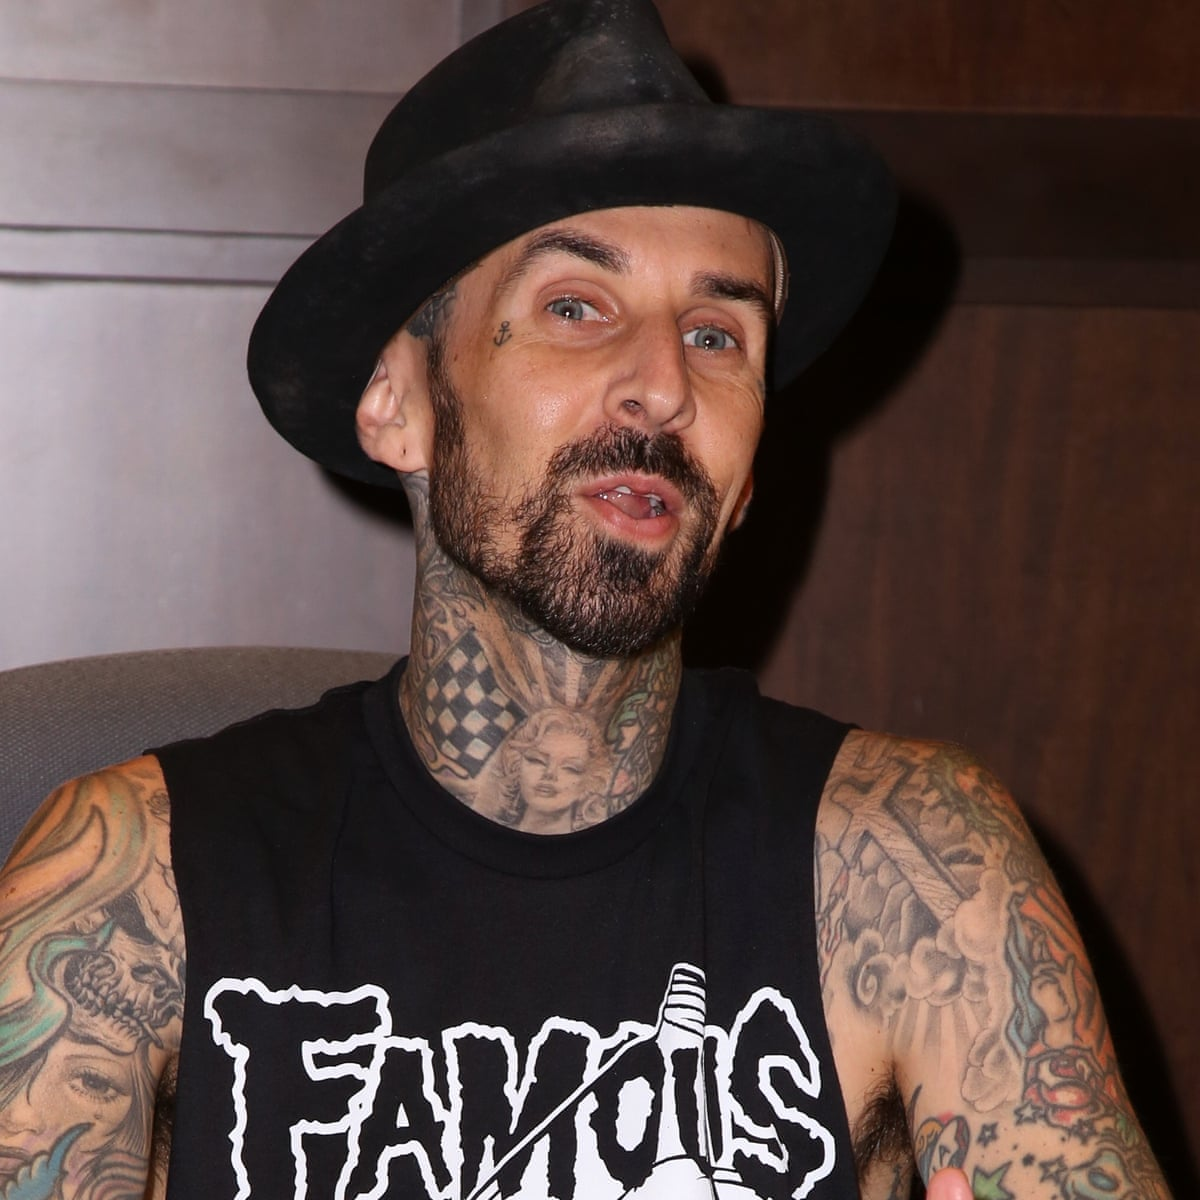 Blink 182 S Travis Barker Offered Friends 1m To Kill Him After Plane Crash Music The Guardian